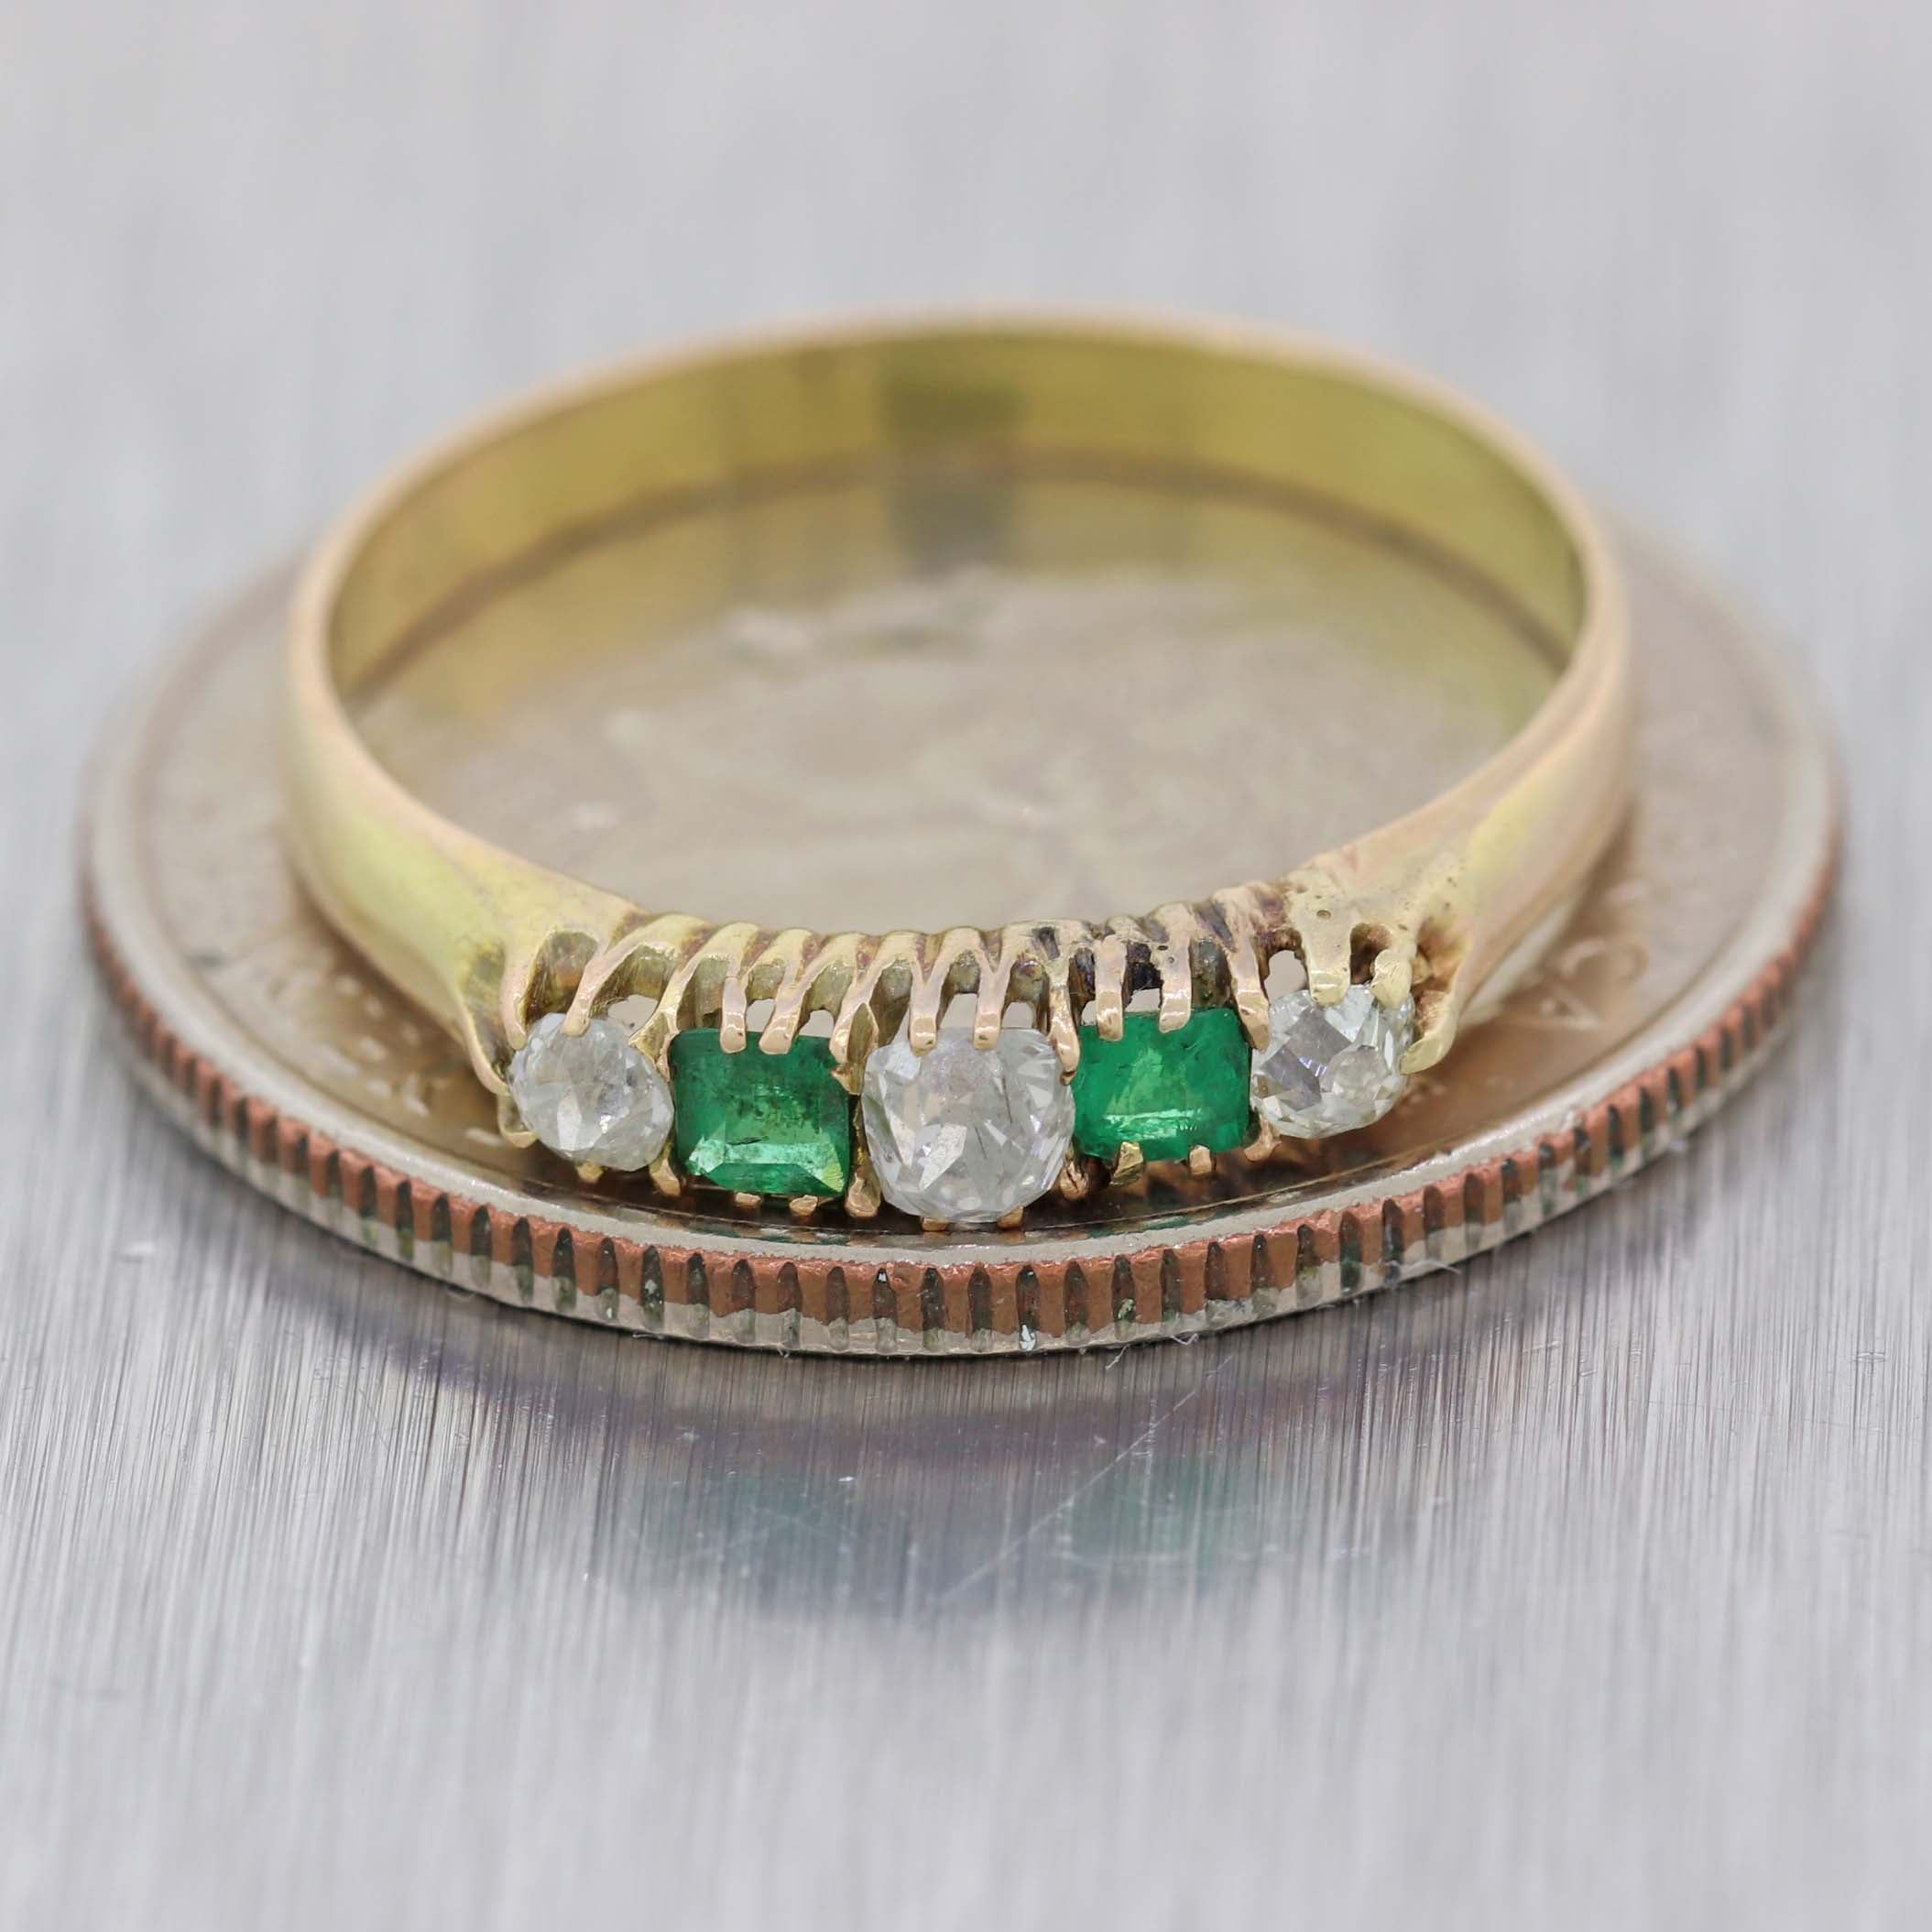 1870s Antique Victorian Estate 14k Yellow Gold .20ctw Diamond Emerald Band Ring